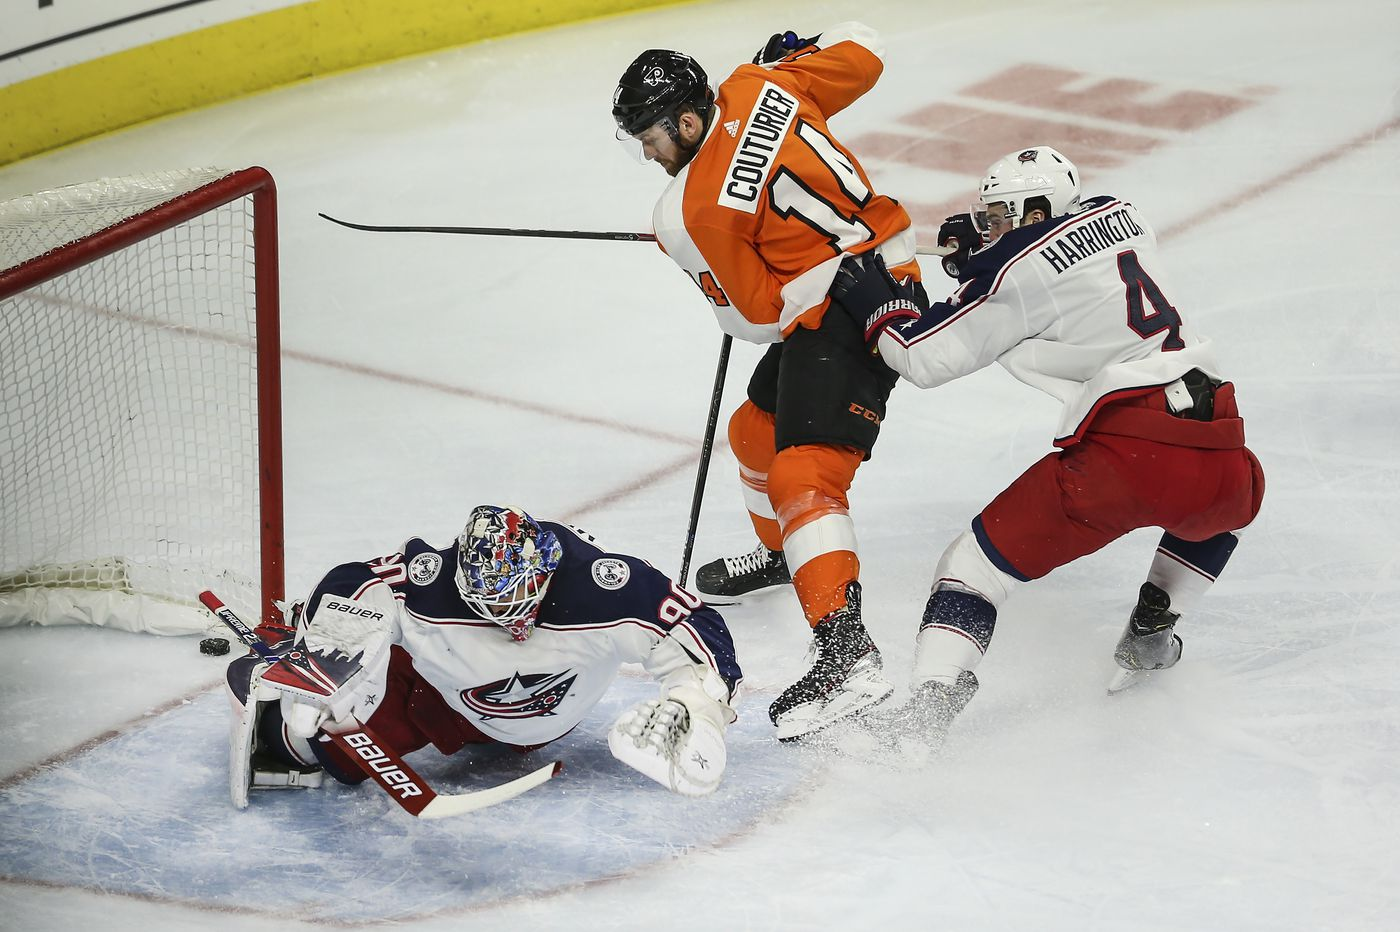 Soaring Flyers will try to shut down Alex Ovechkin again in critical game in Washington